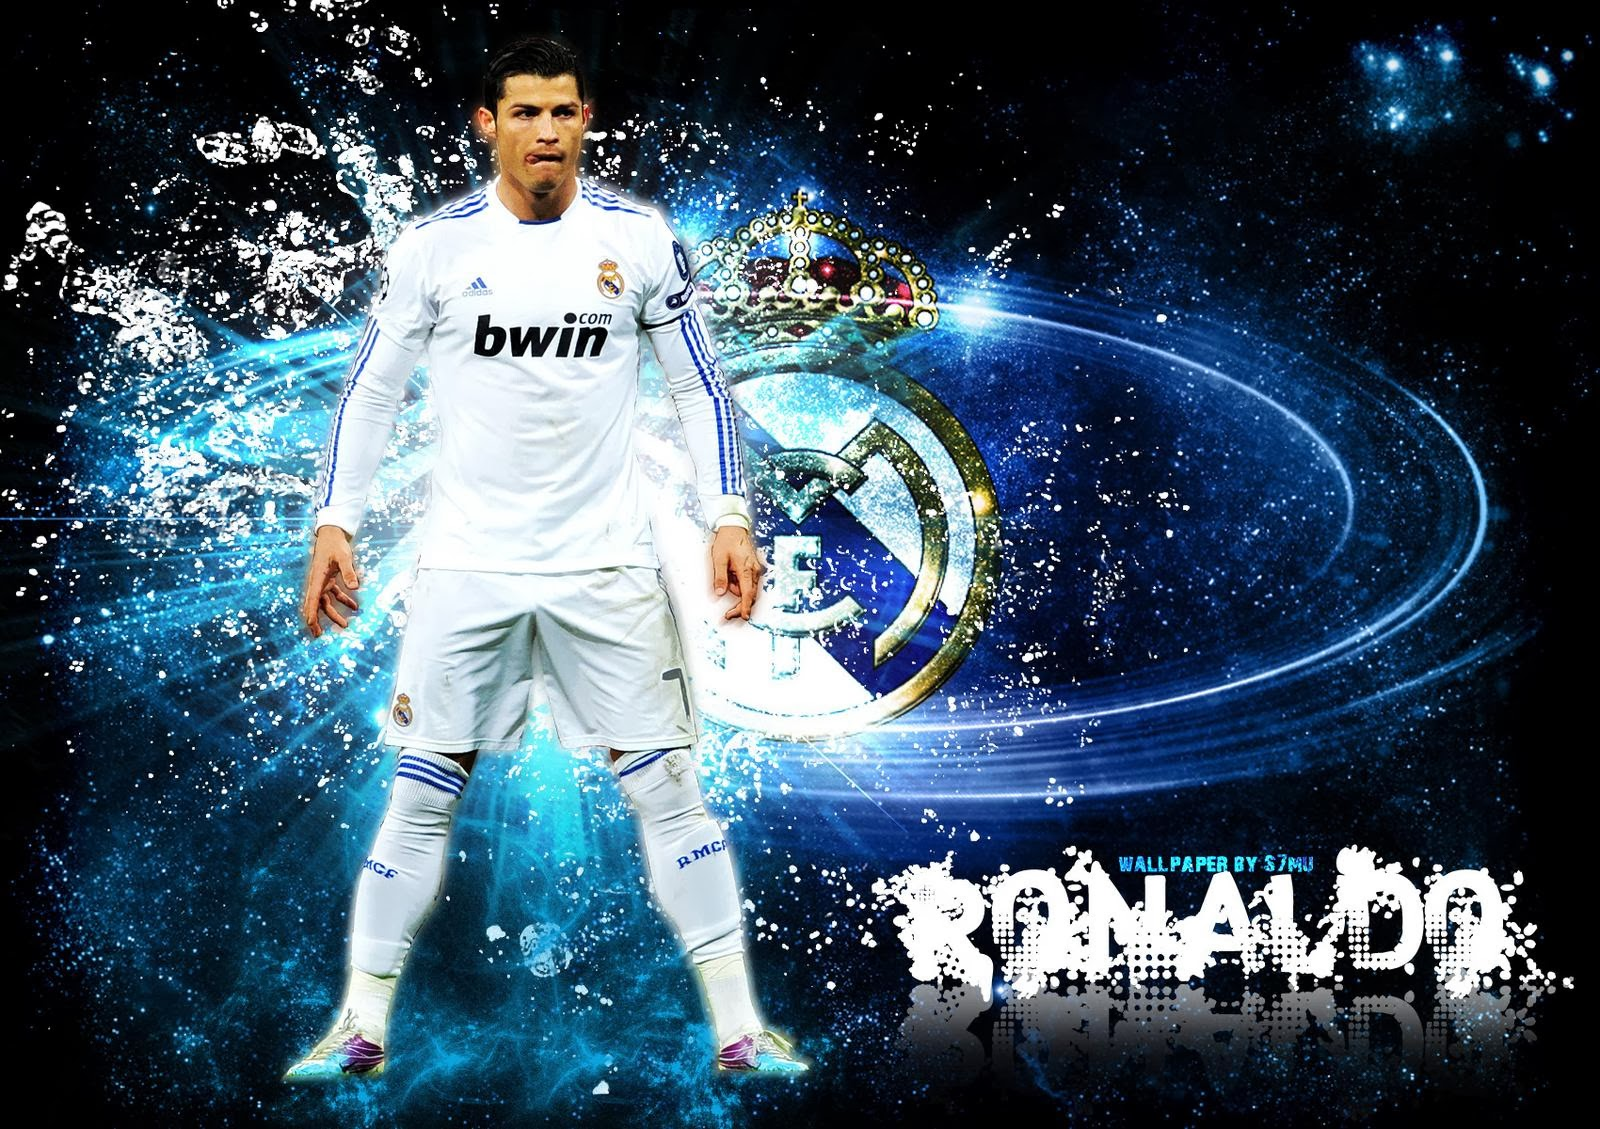 Wallpapers De Cristiano Ronaldo: Football HQ Wallpapers: February 2014